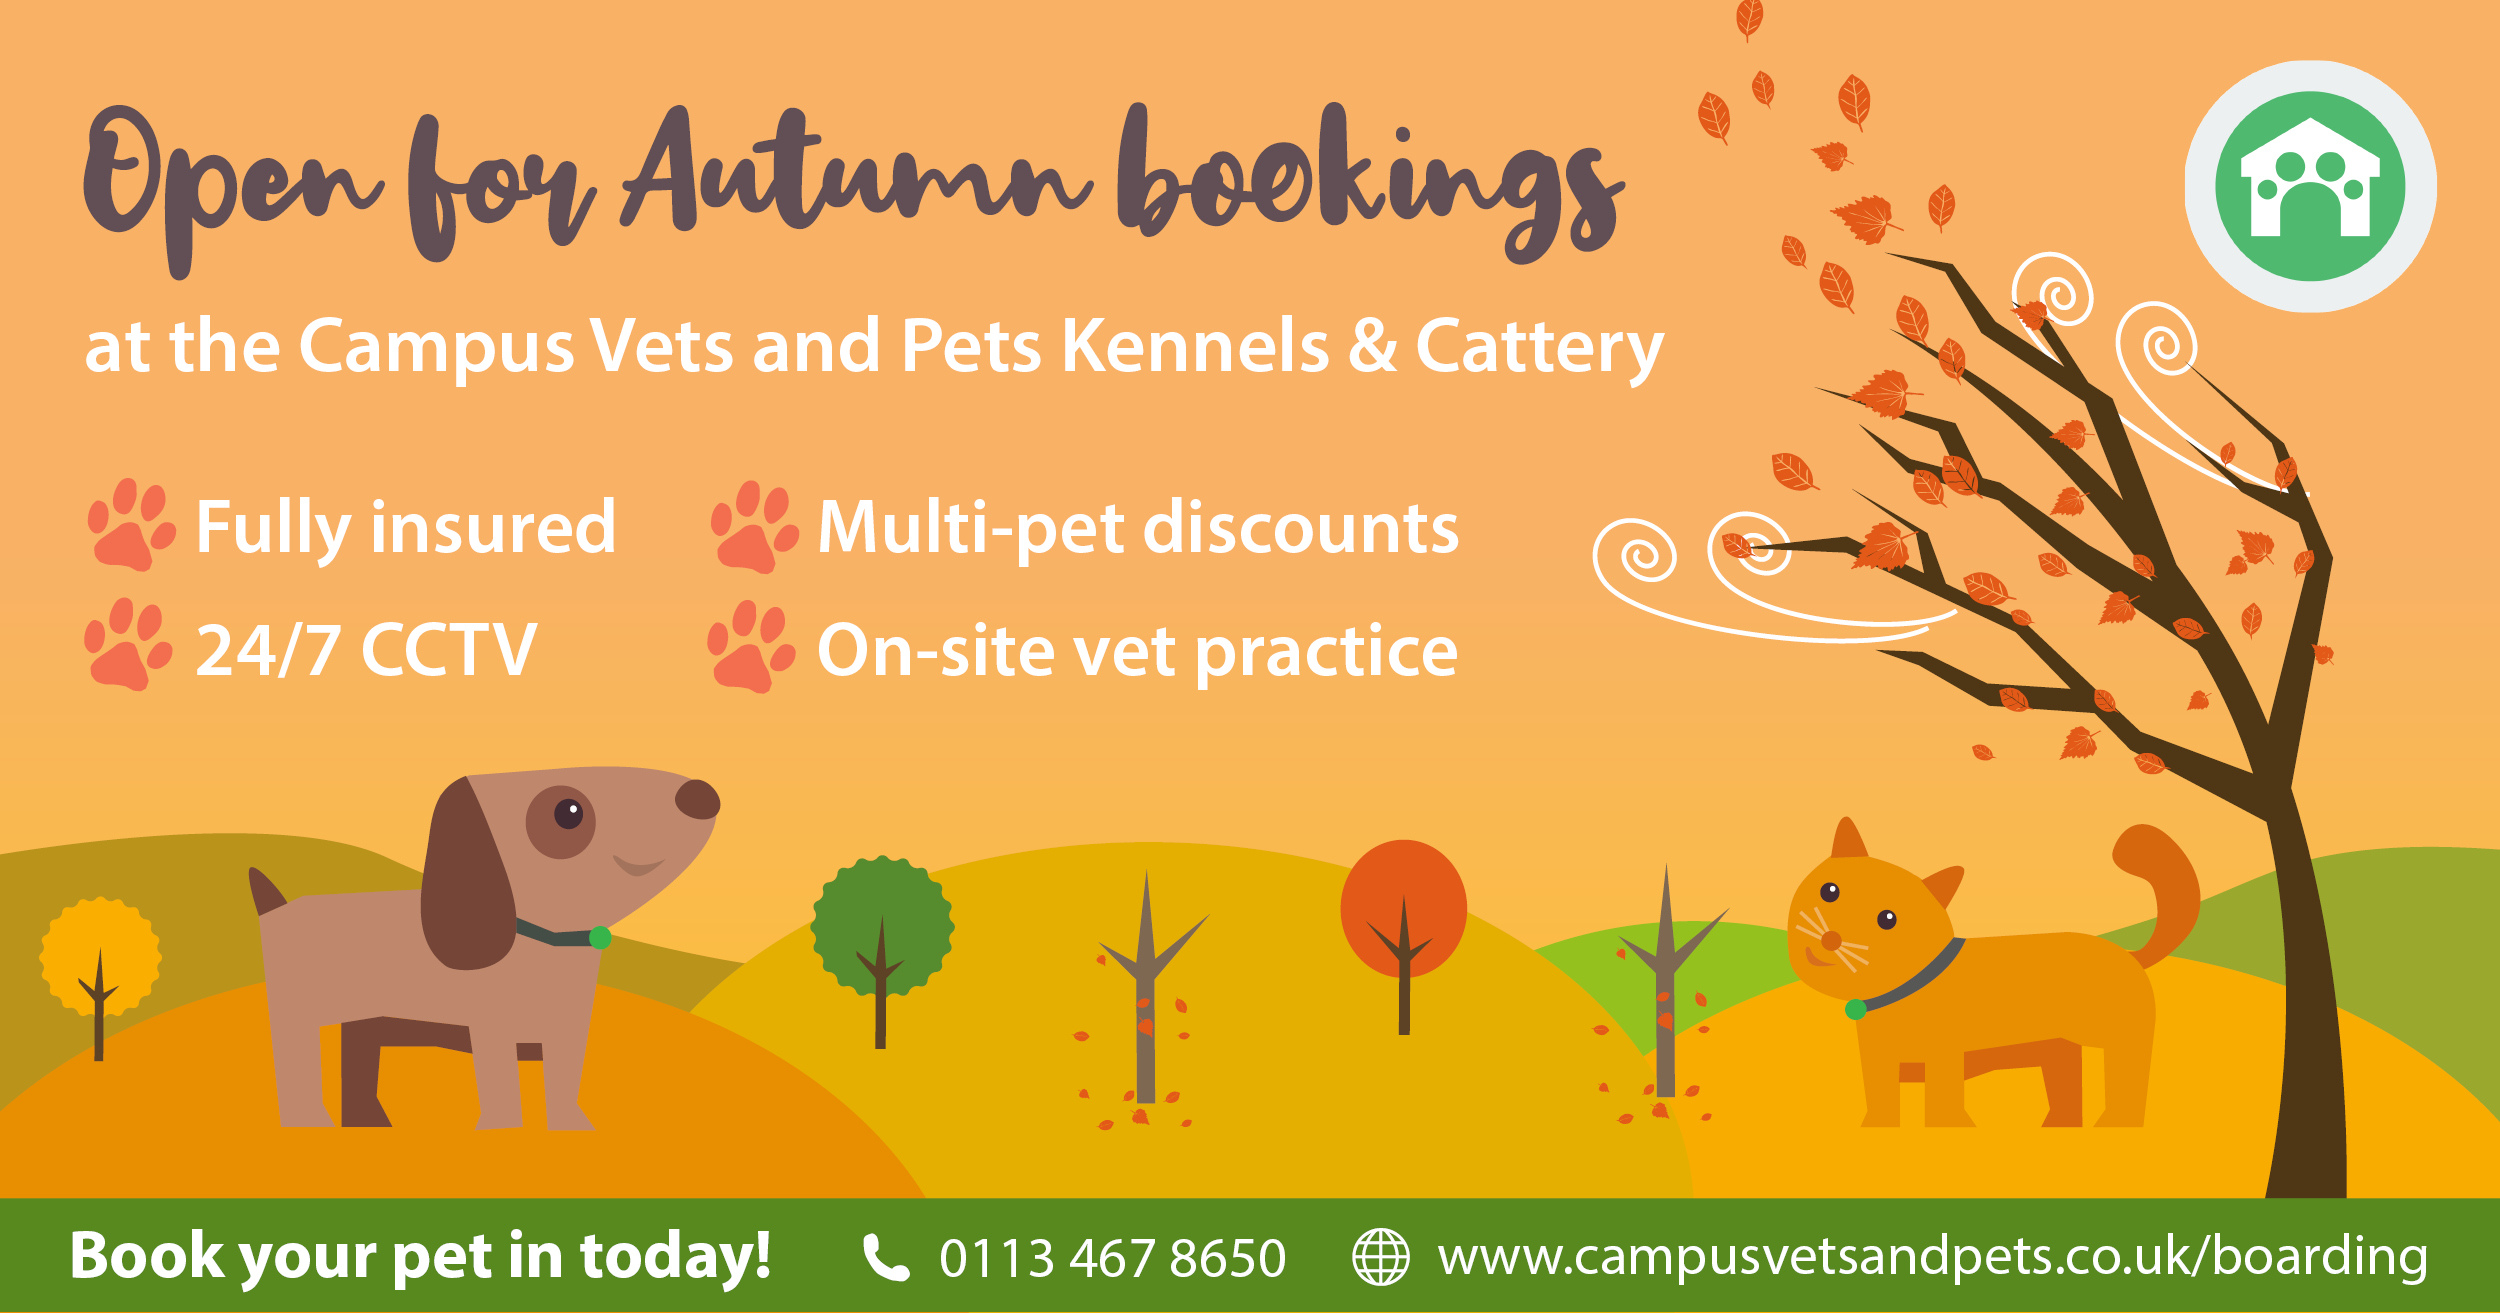 Kennels and Cattery open for Autumn bookings!